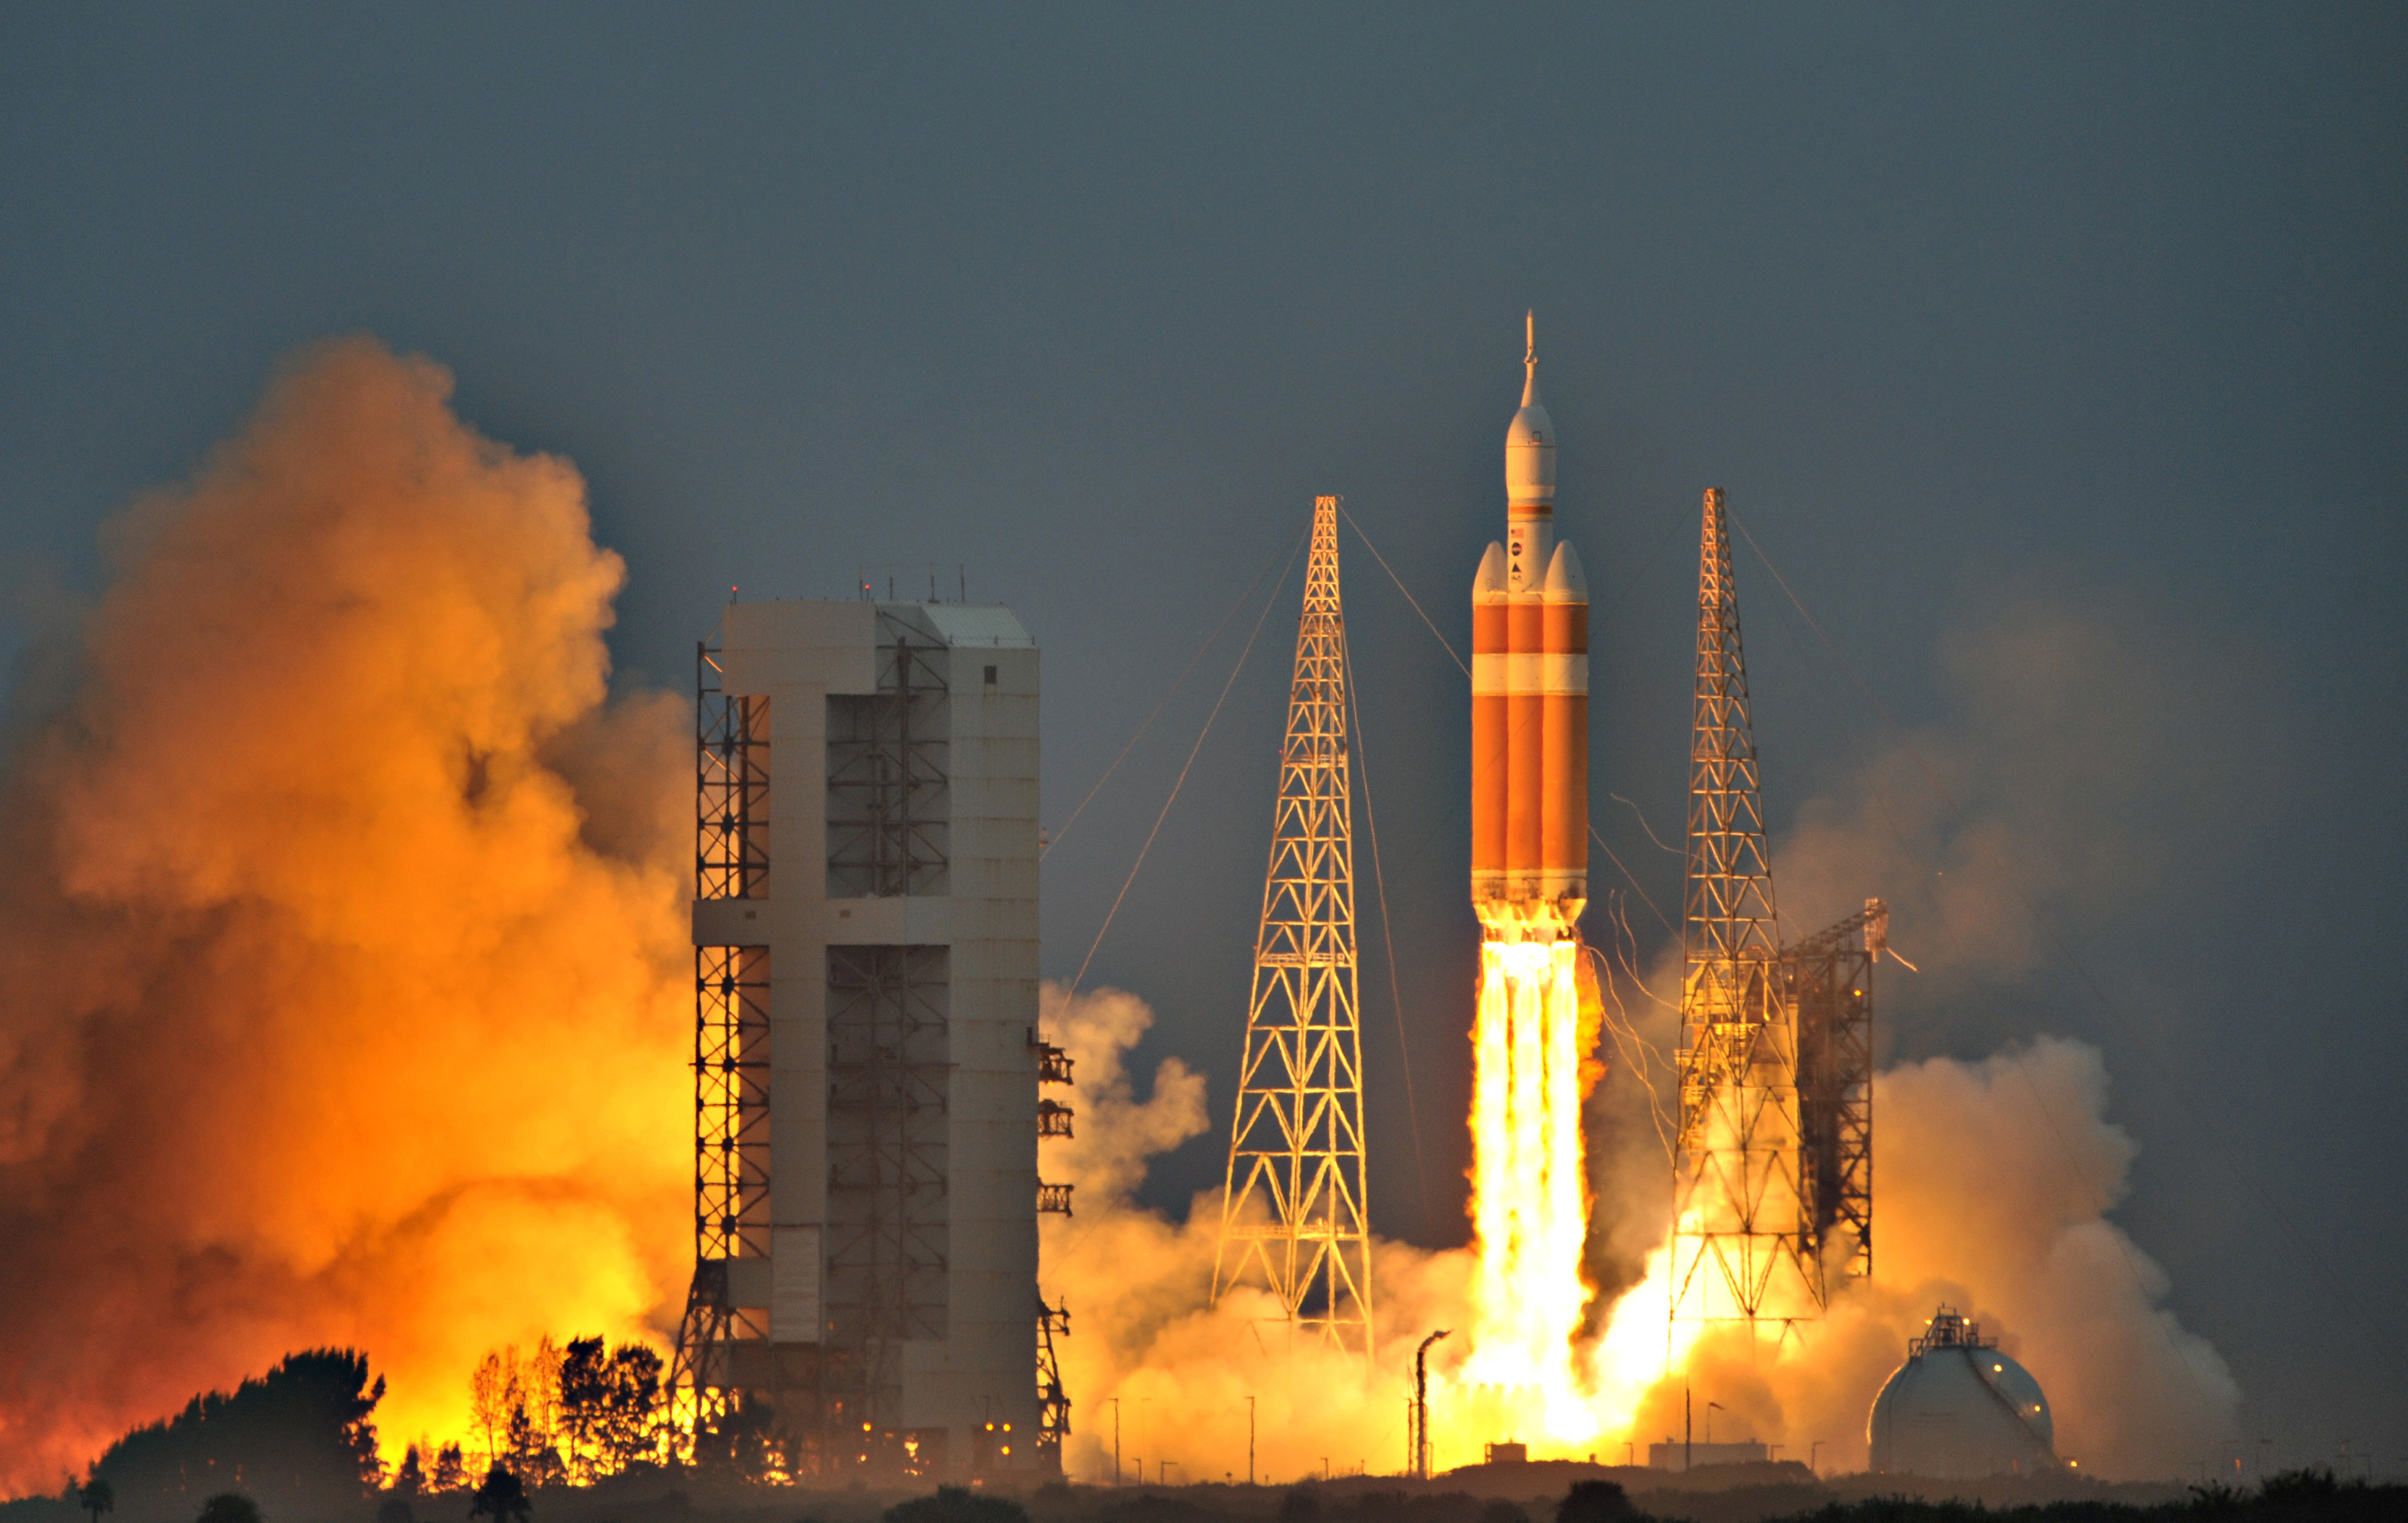 The Delta IV Heavy rocket with the Orion spacecraft lifts off from the Cape Canaveral Air Force Station in Cape Canaveral, Florida December 5, 2014. REUTERS/Steve Nesius (UNITED STATES - Tags: TRANSPORT SCIENCE TECHNOLOGY) - RTR4GUK3